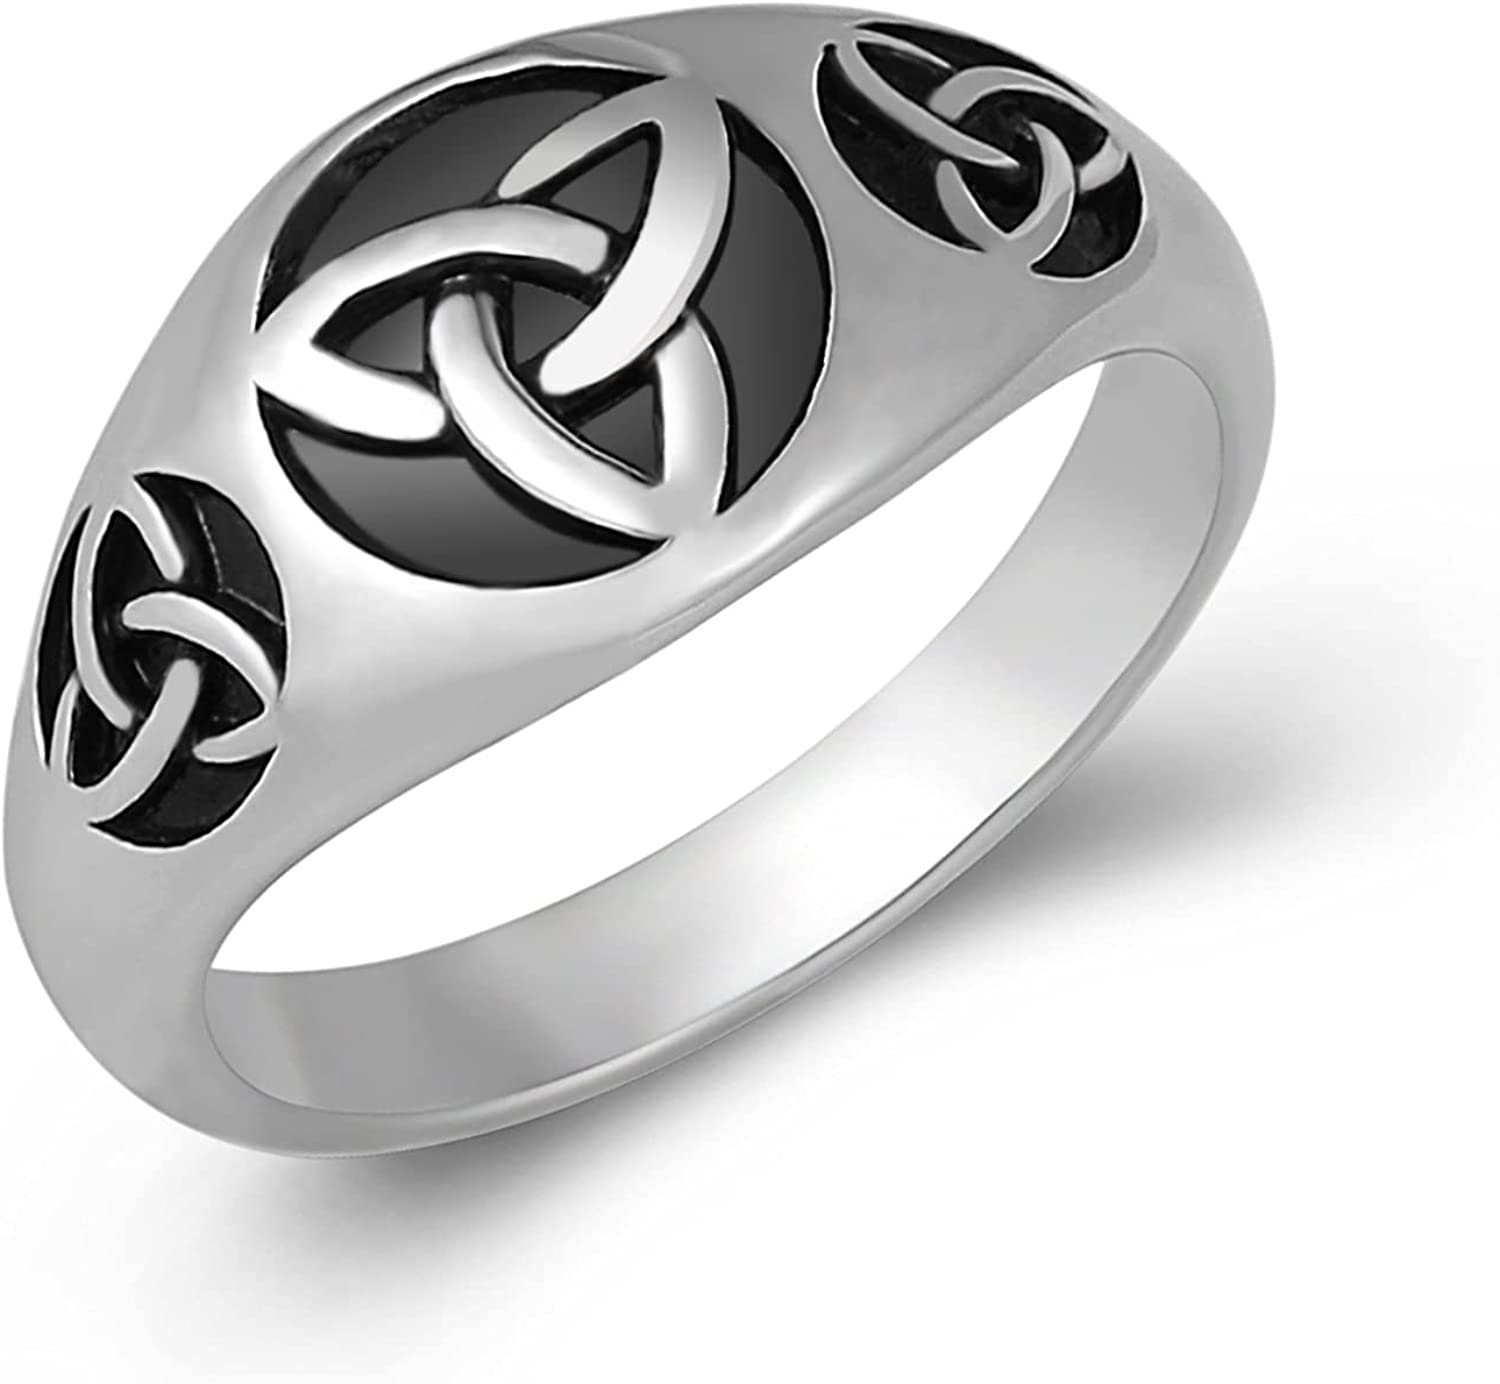 HZMAN Triquetra Trinity Knot Stainless Steel Irish Celtic Knot Ring Size(7-13)